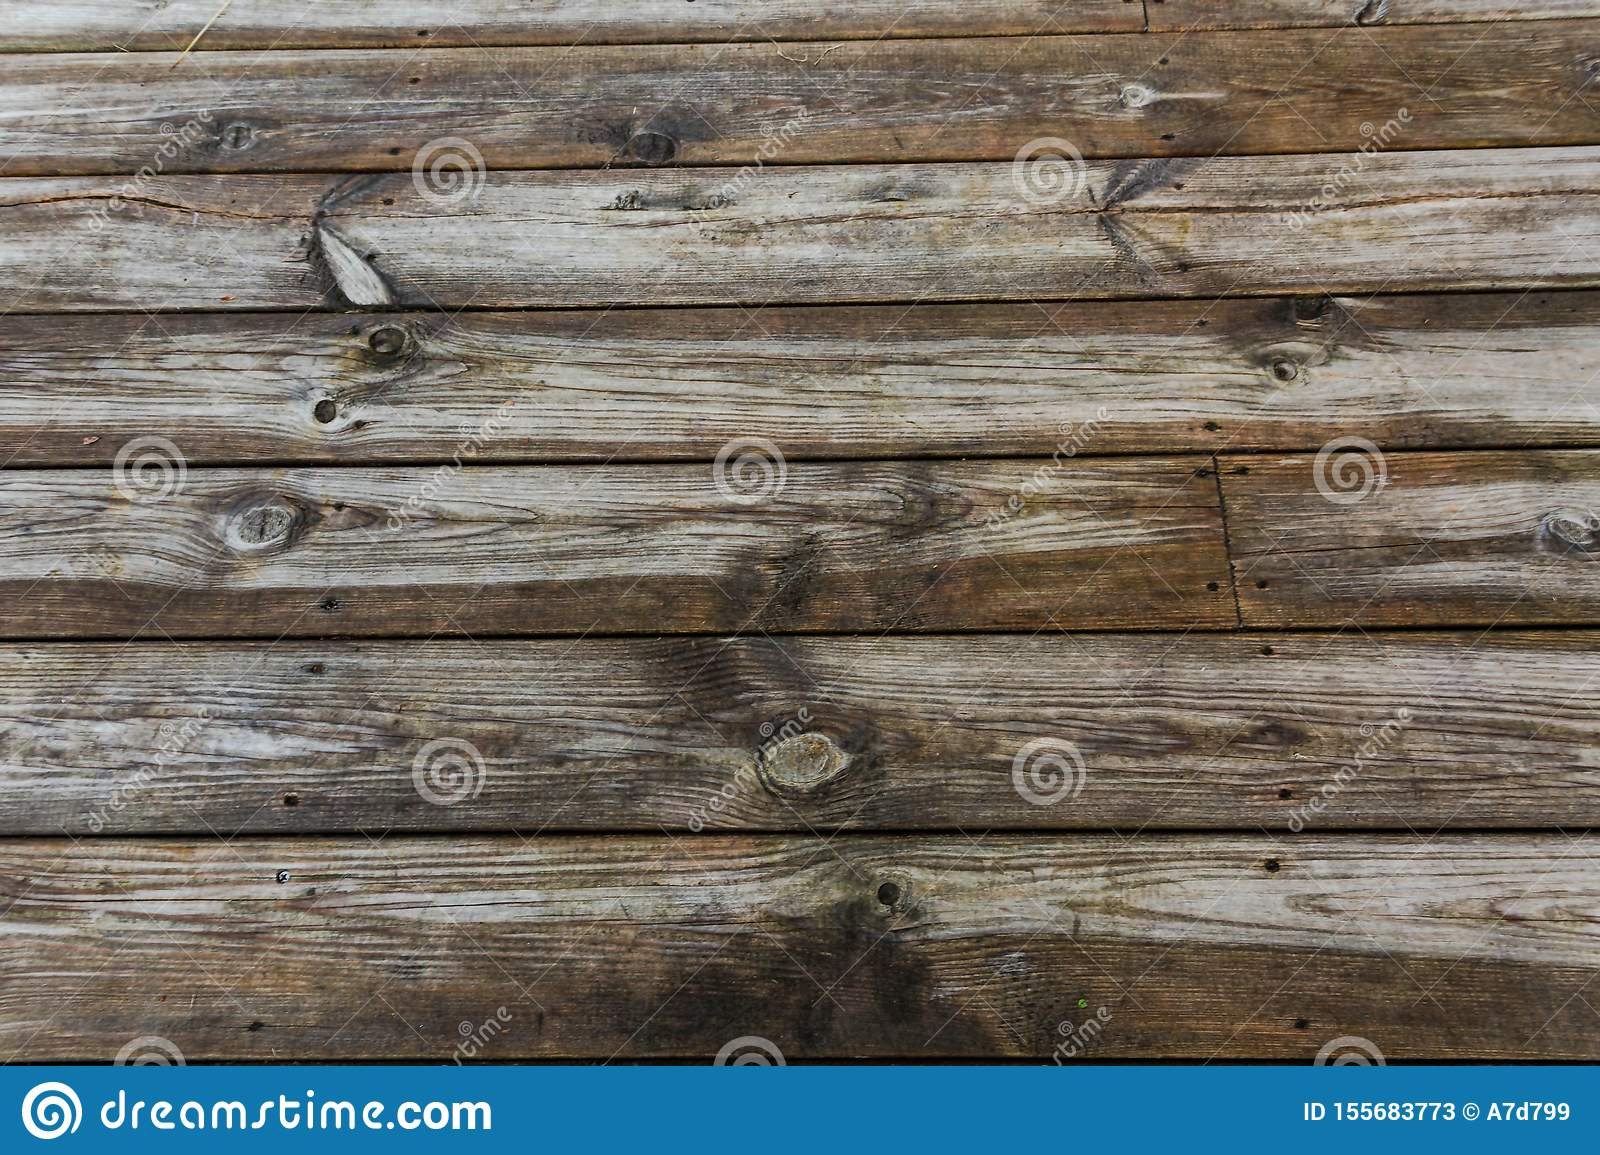 Beautiful view of old wooden wall surface. Beautiful wooden texture backgrounds